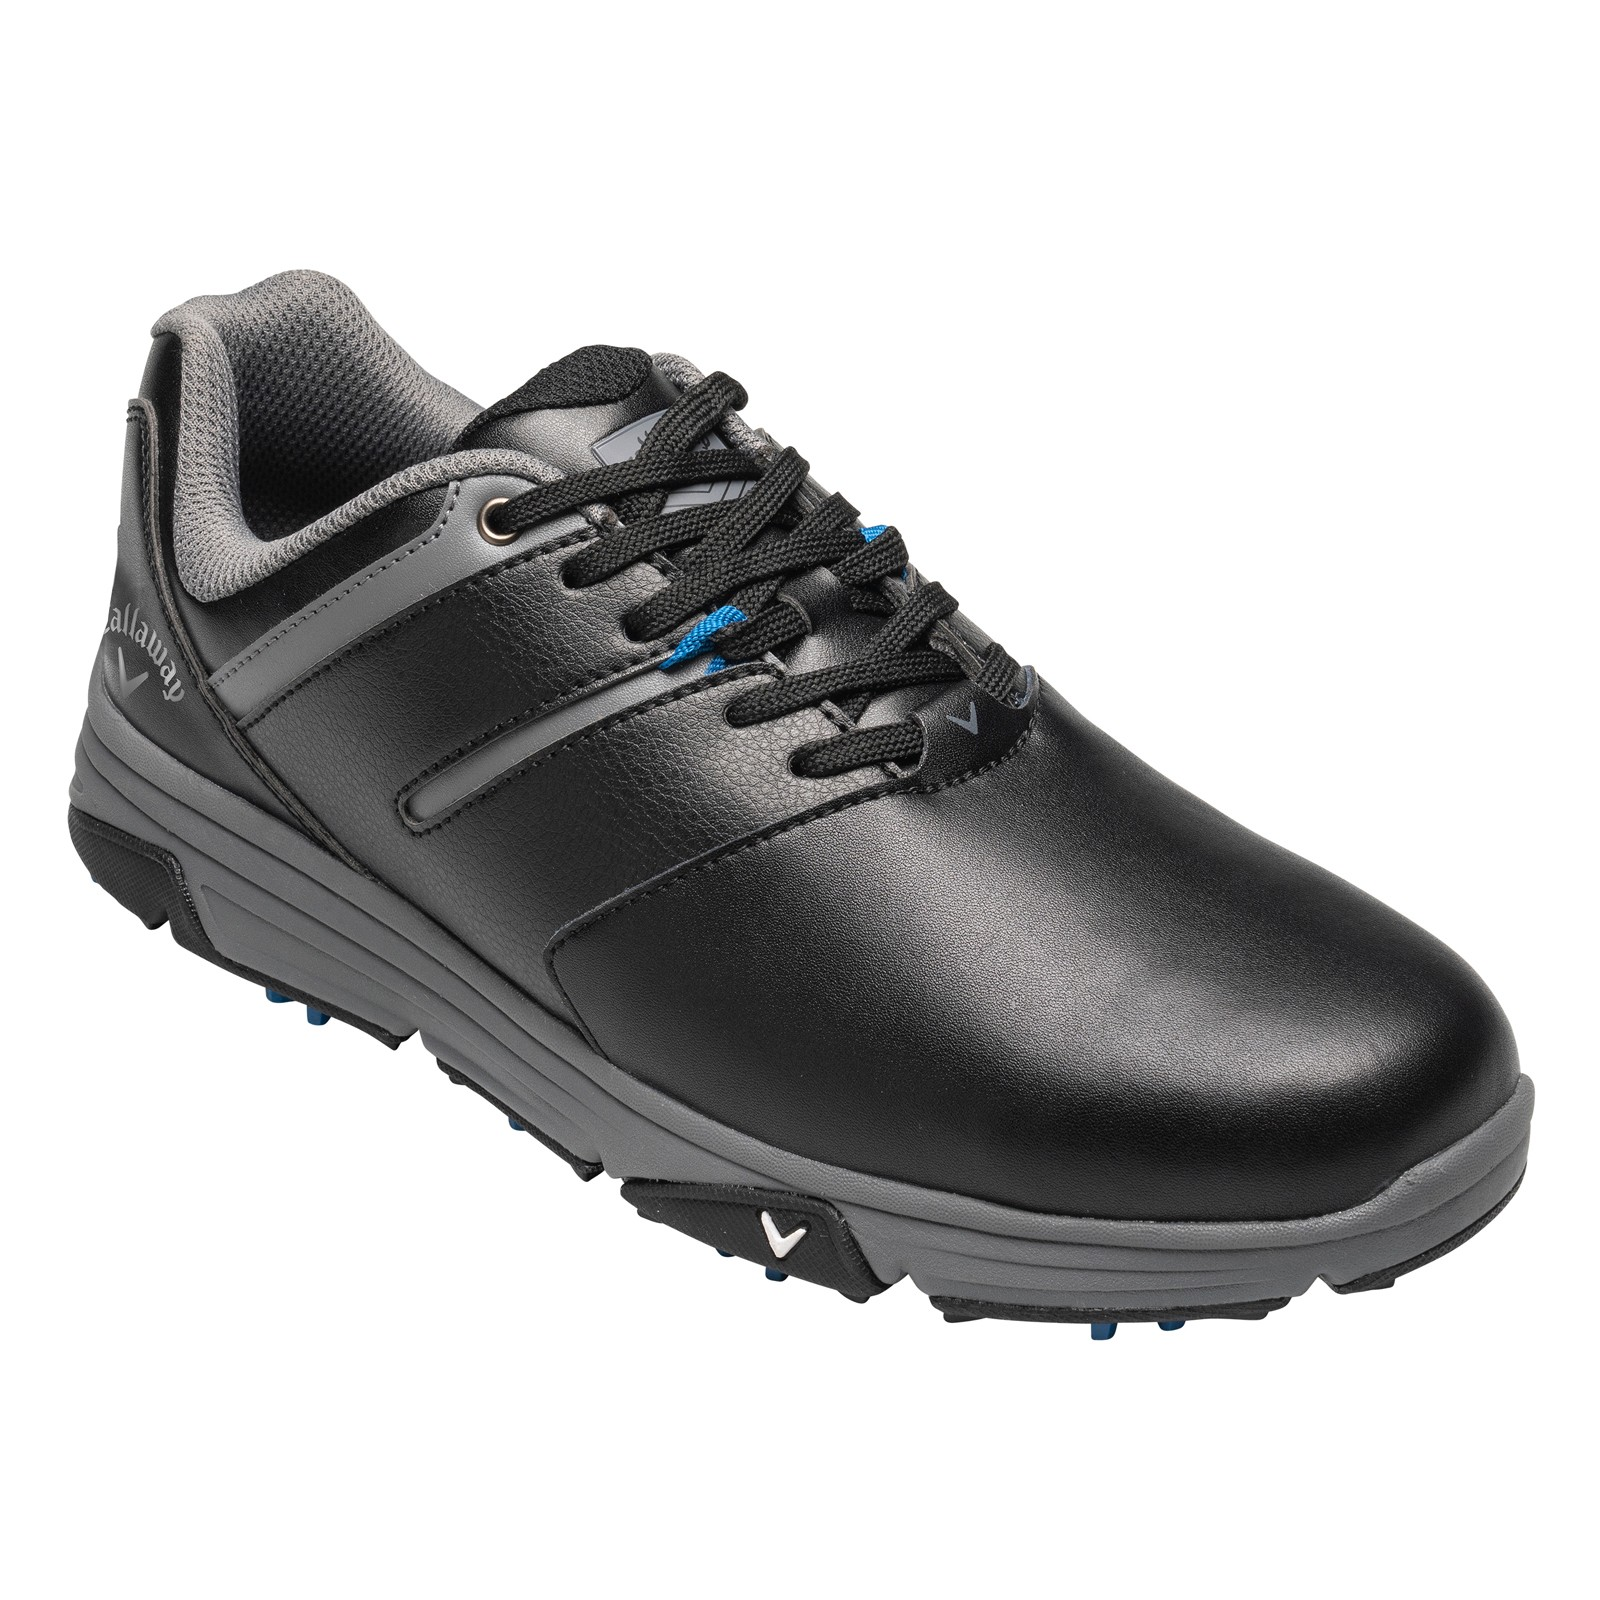 Callaway Chev Mission Golf Shoes